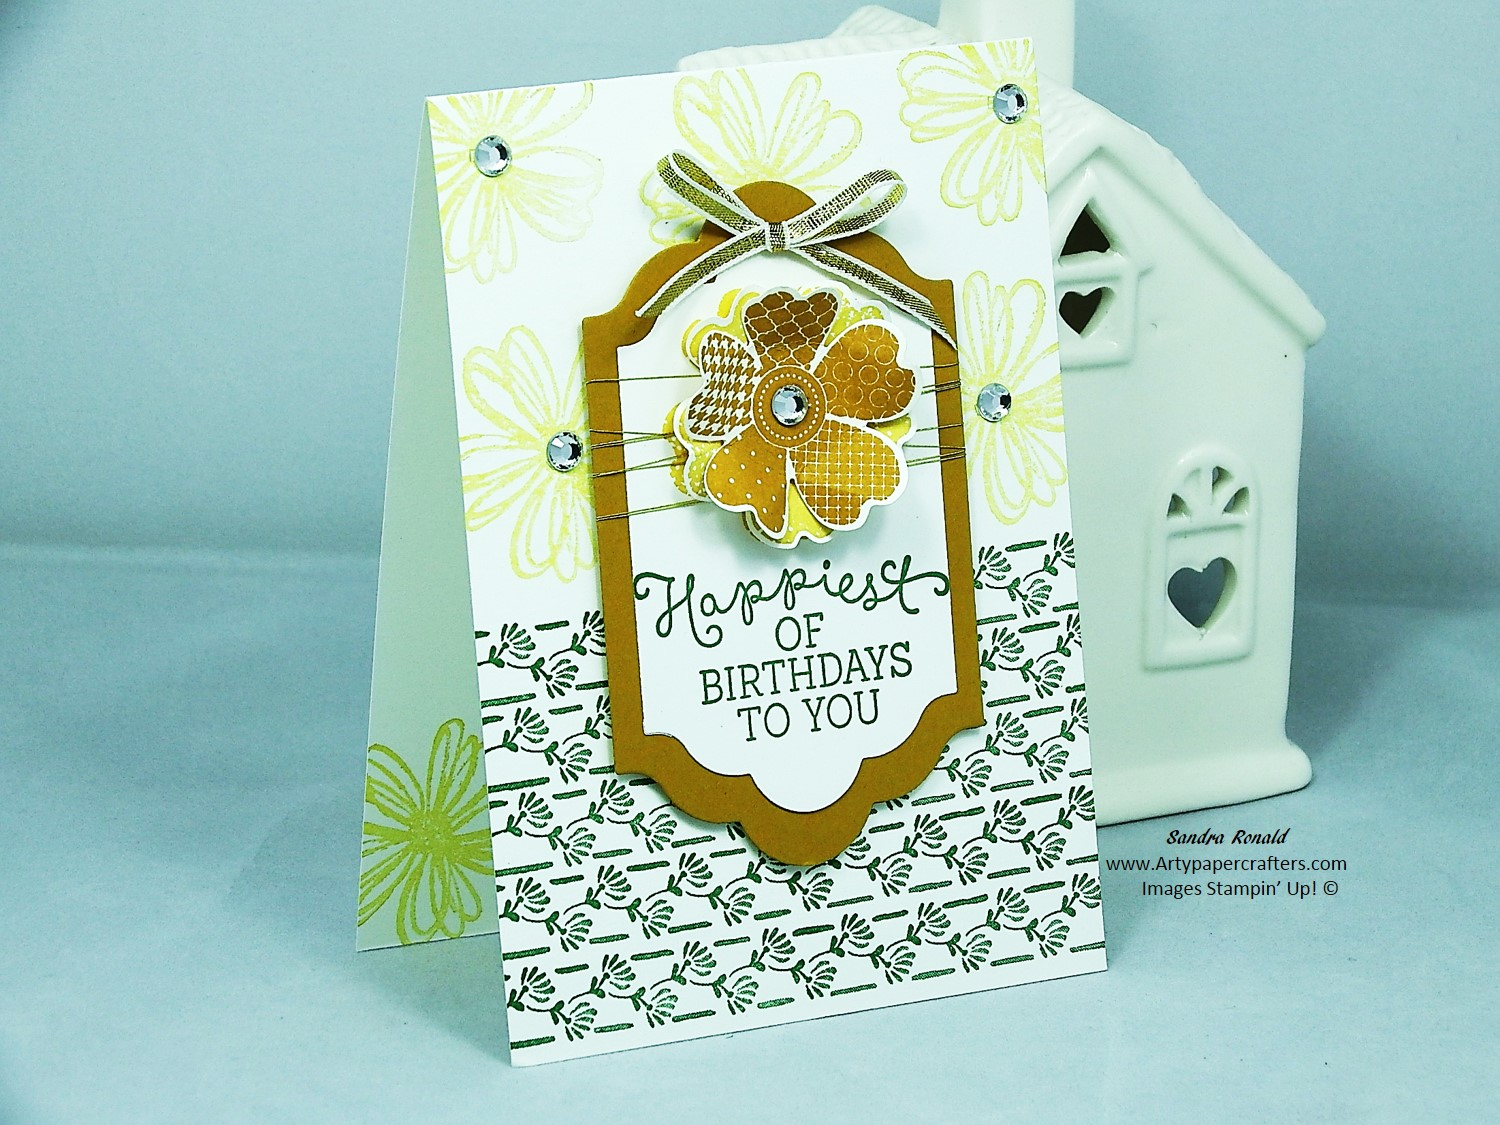 Handmade greetings stampin up arty paper crafters handmade birthday card using flower shop and floral phrases from stampin up bookmarktalkfo Gallery